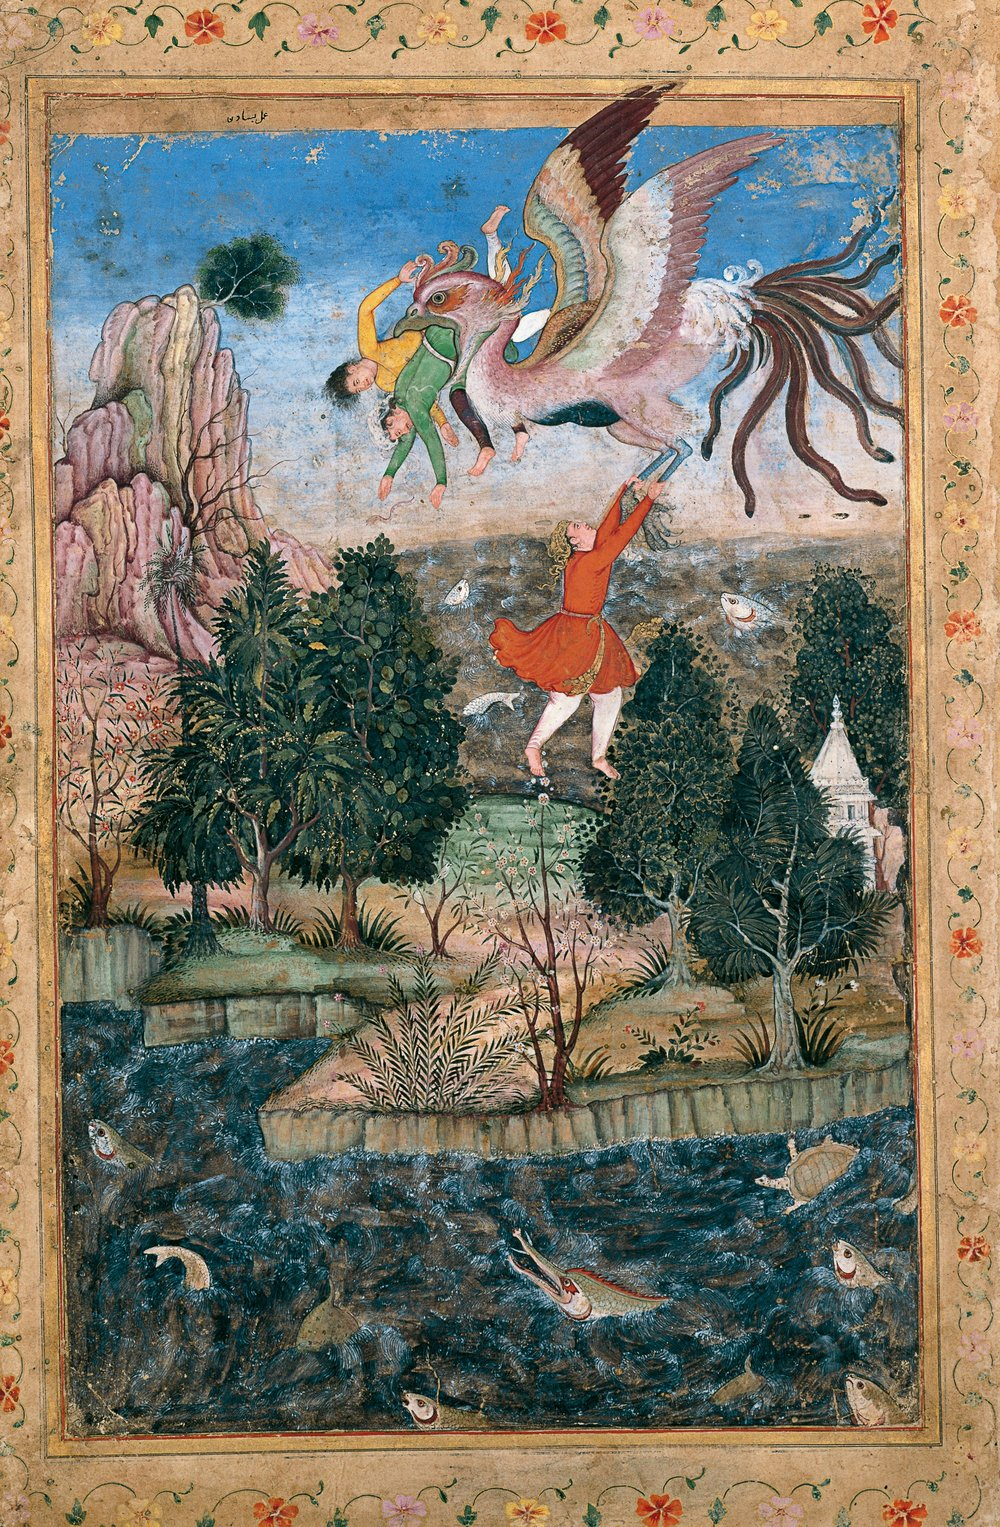 The Flight of the Simurgh . c. 1590, by Basawan, from the Sadruddin Aga Khan Collection (Wikimedia Commons)